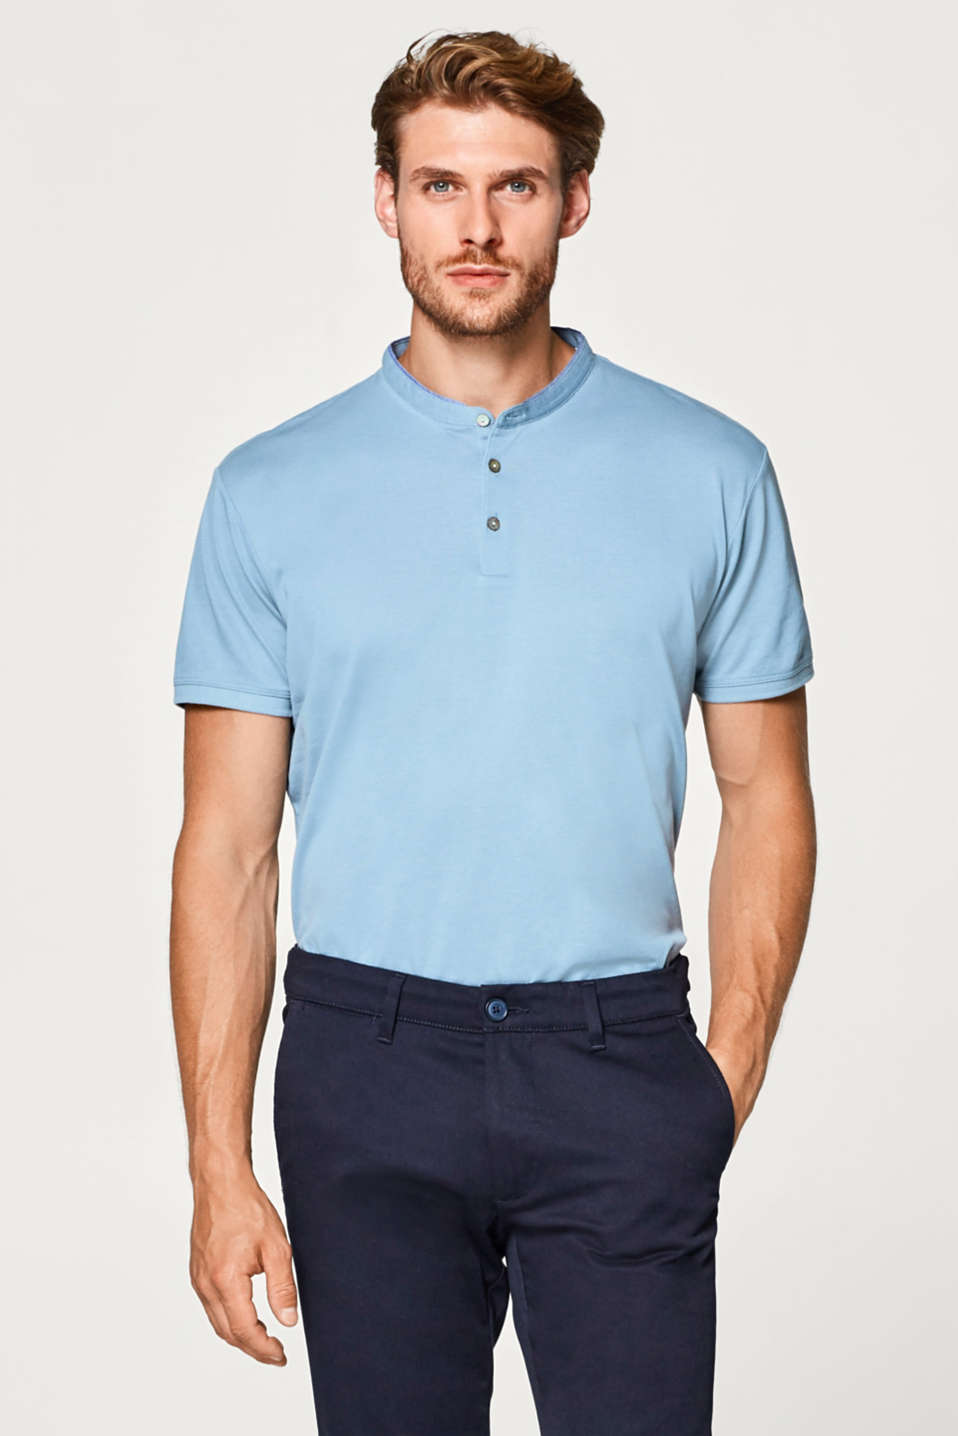 Esprit - Straight polo shirt with a stand-up collar, 100% cotton